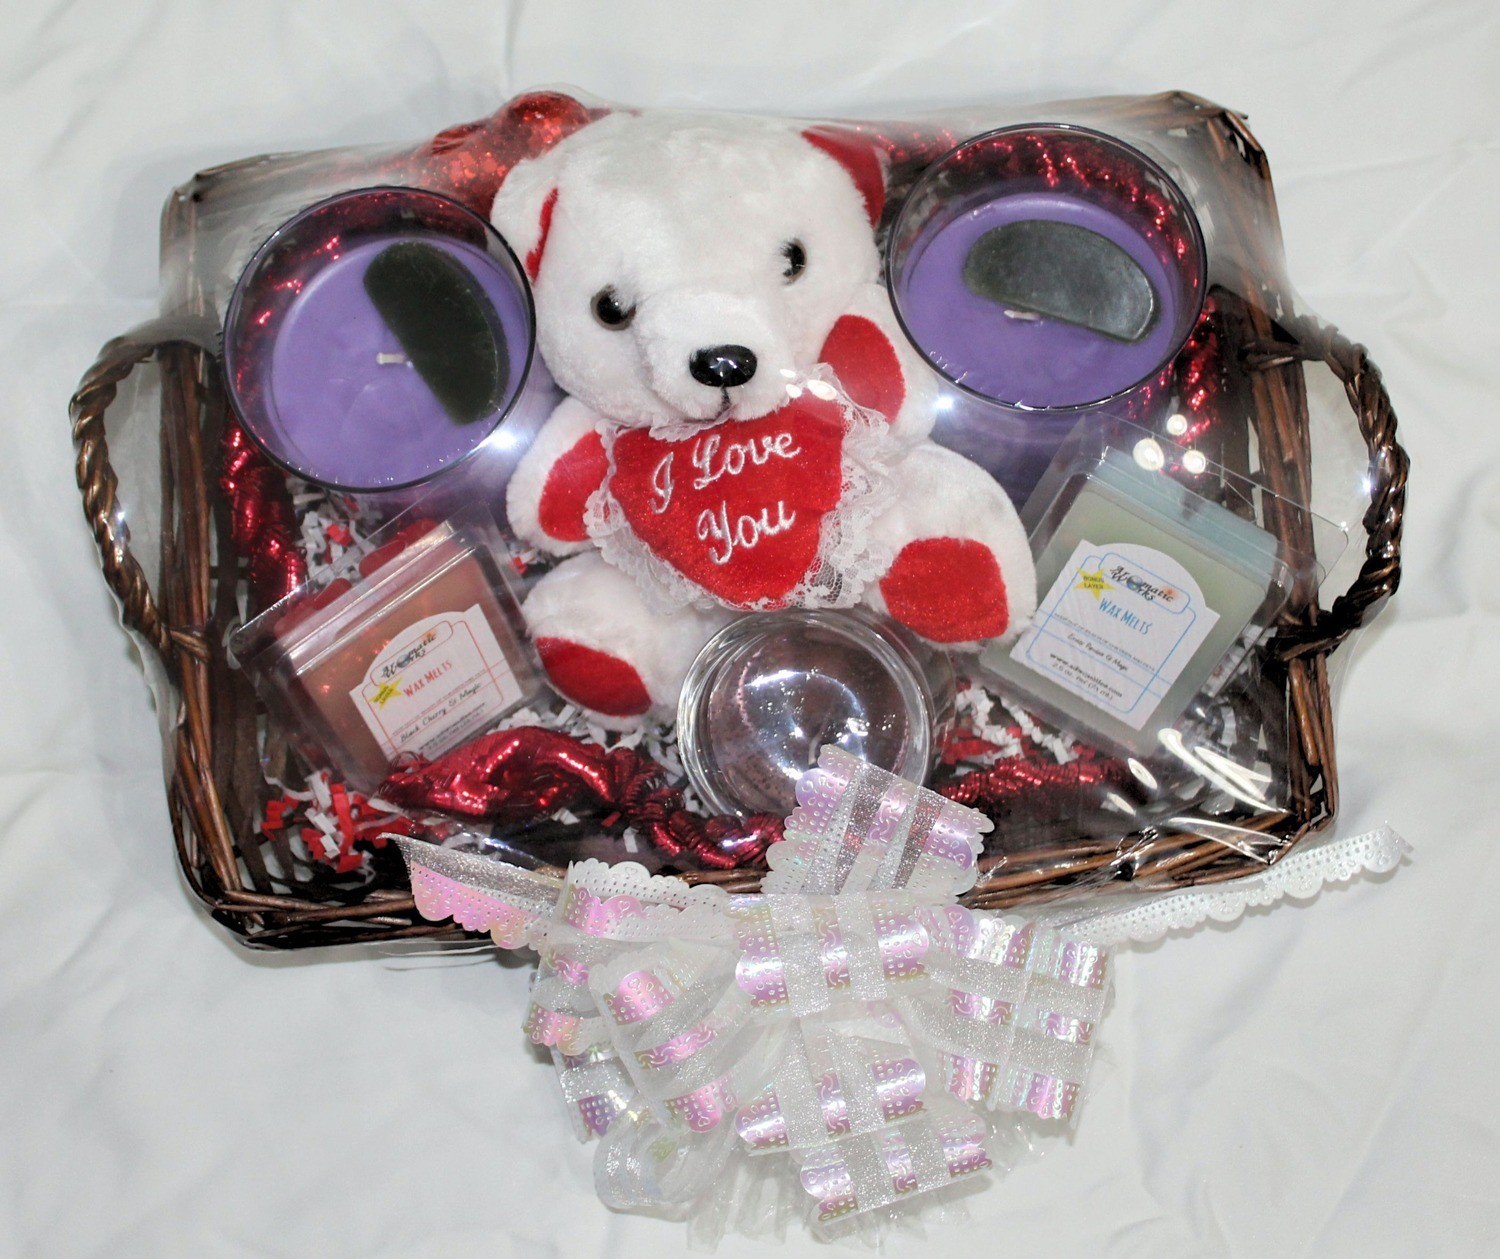 Sexy Feelings Valentine's Day Gift Basket